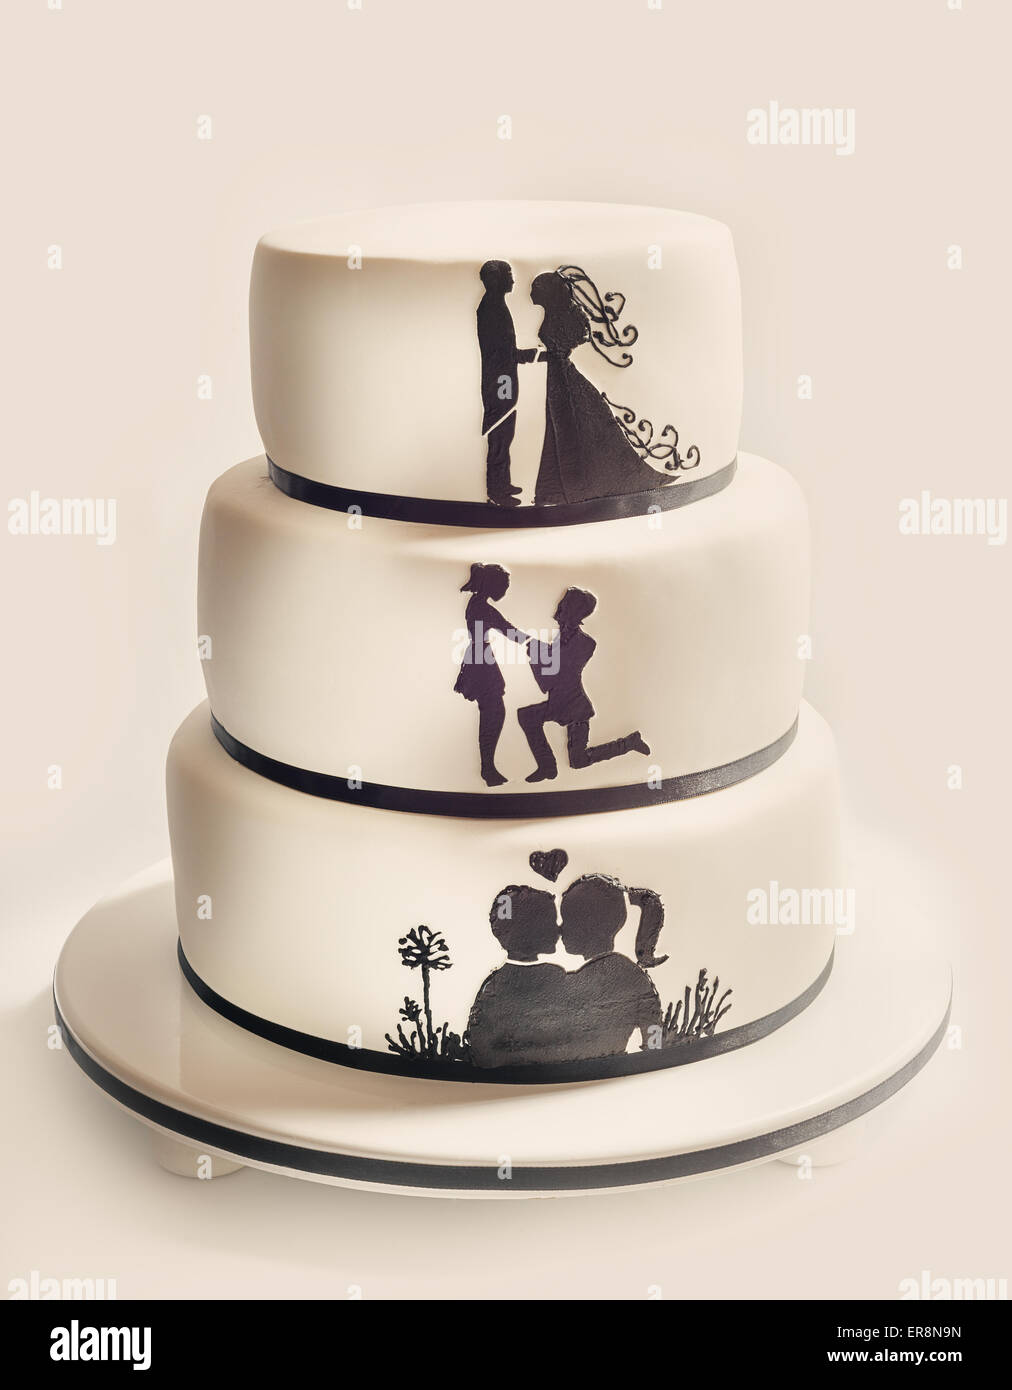 Details of a wedding cake, white sugar cream and black silhouettes. - Stock Image